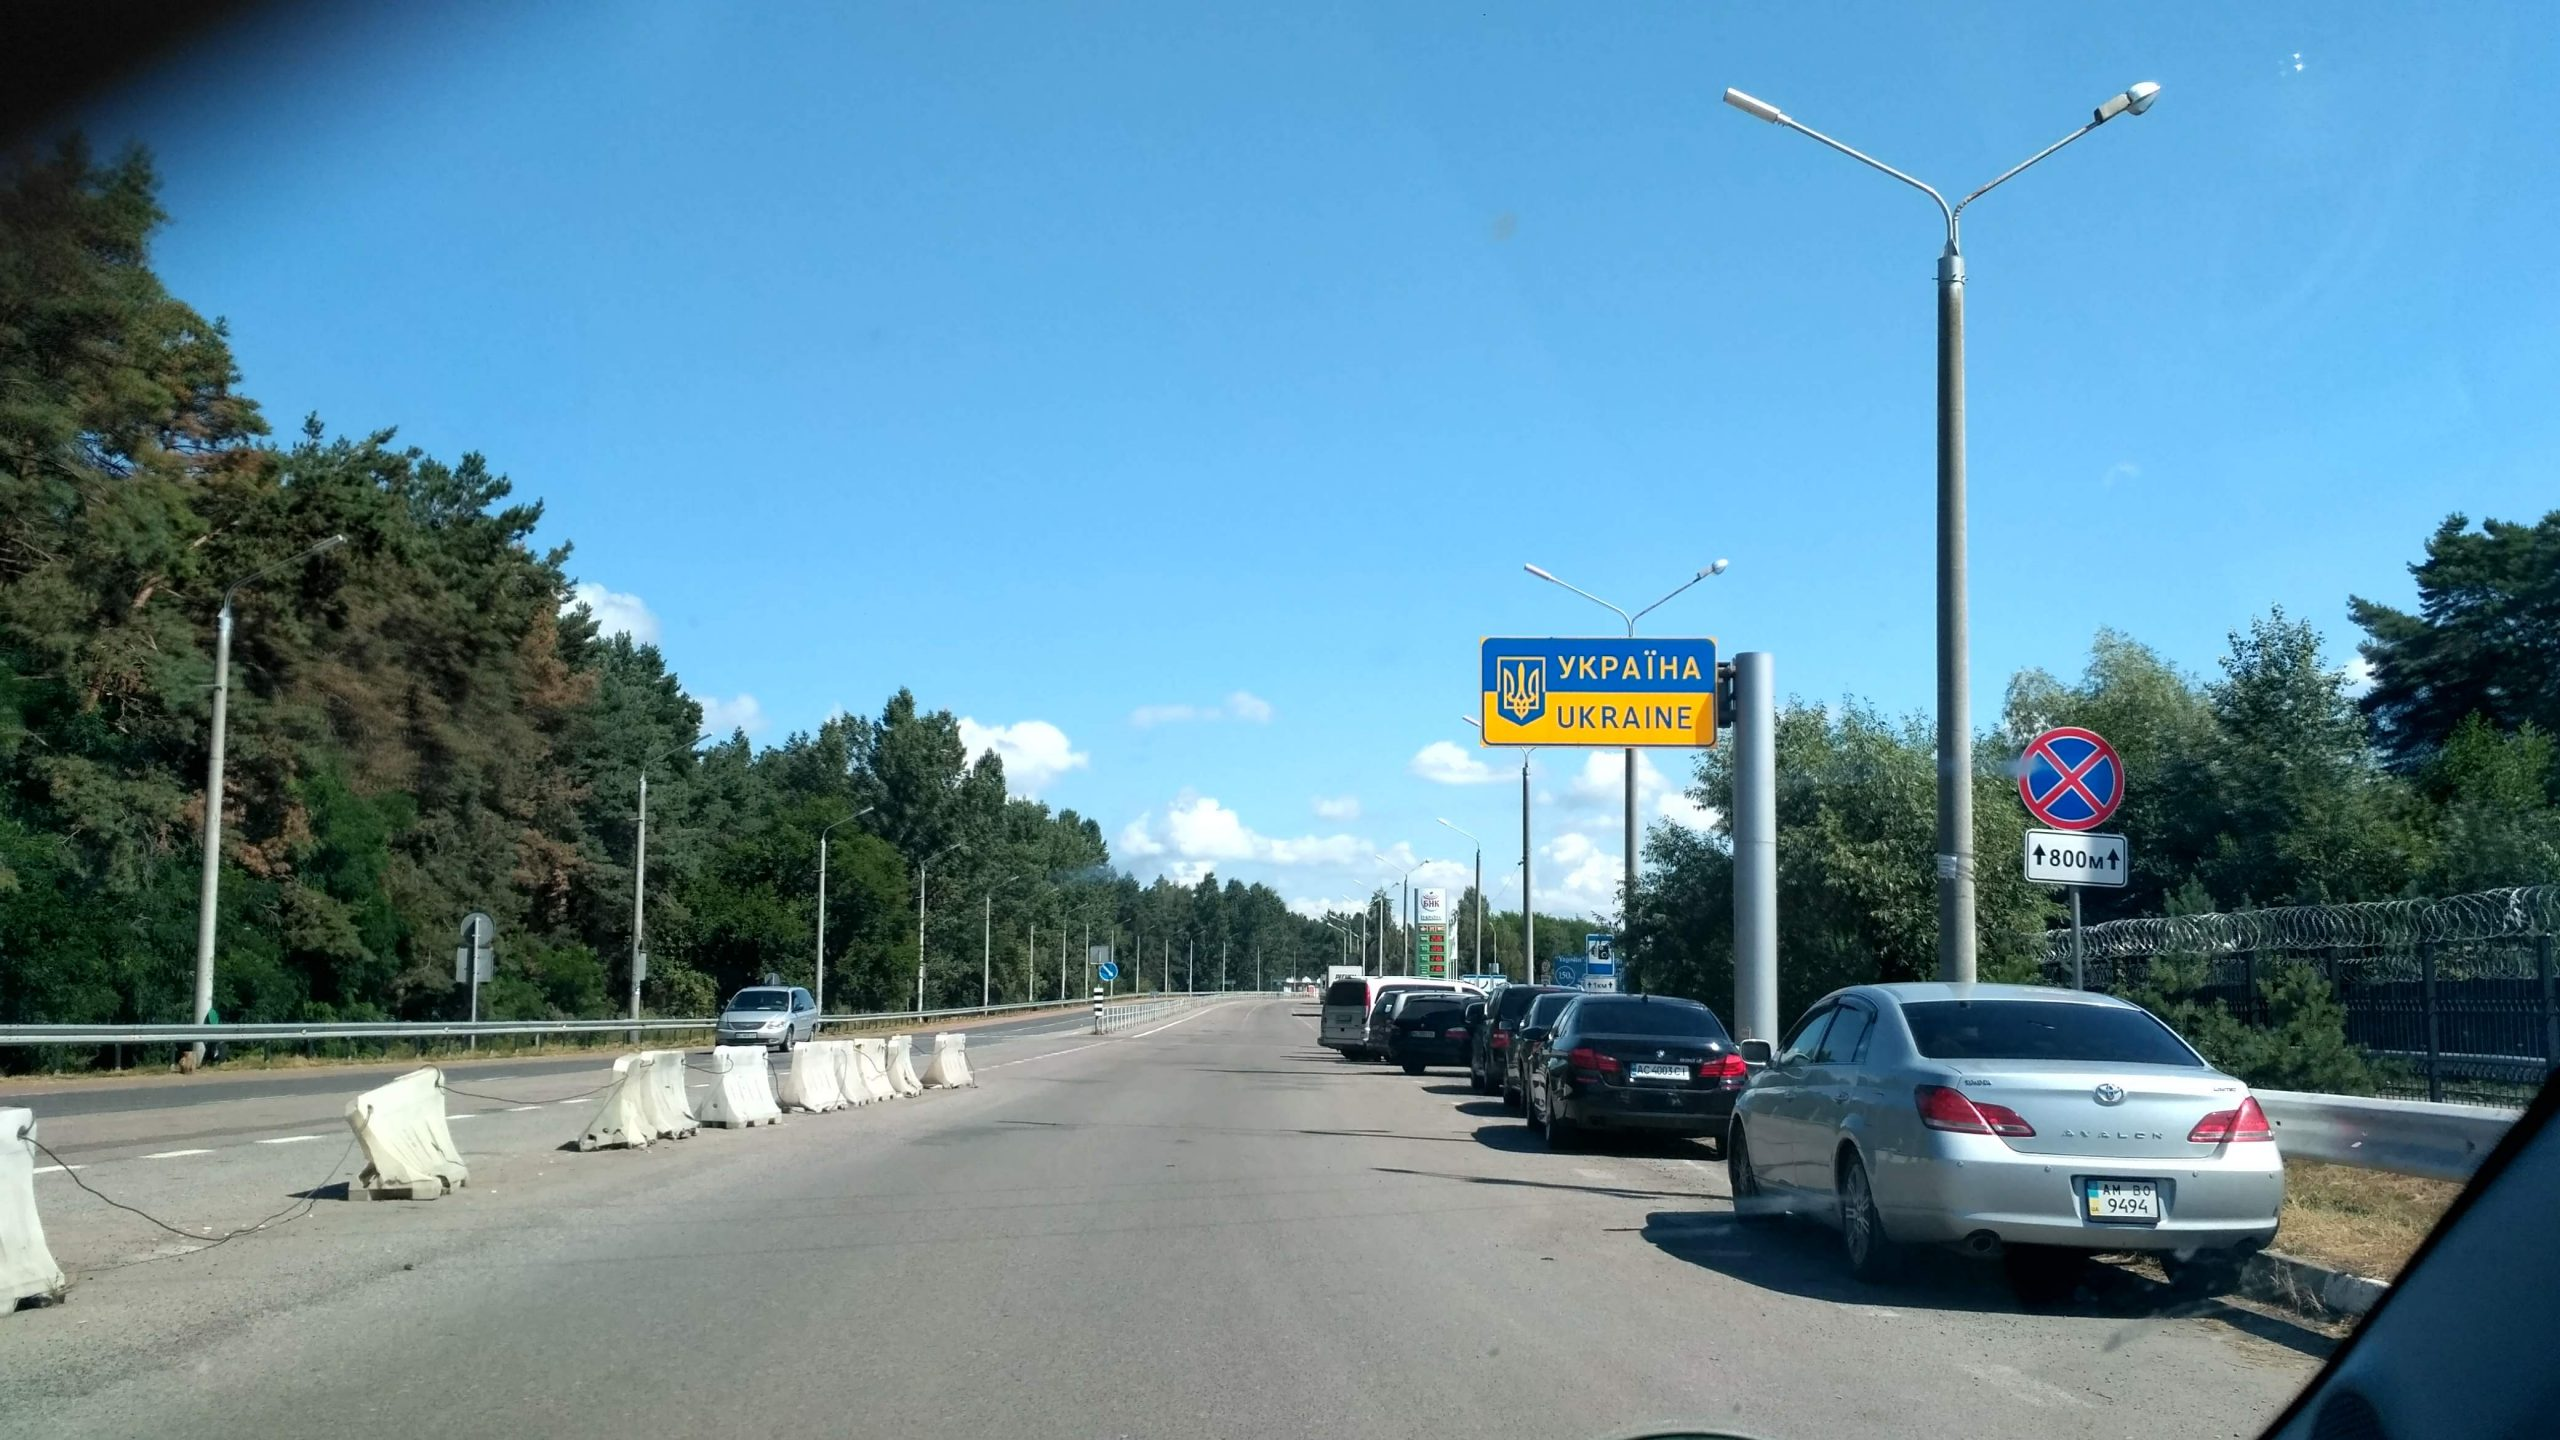 driving in Ukraine